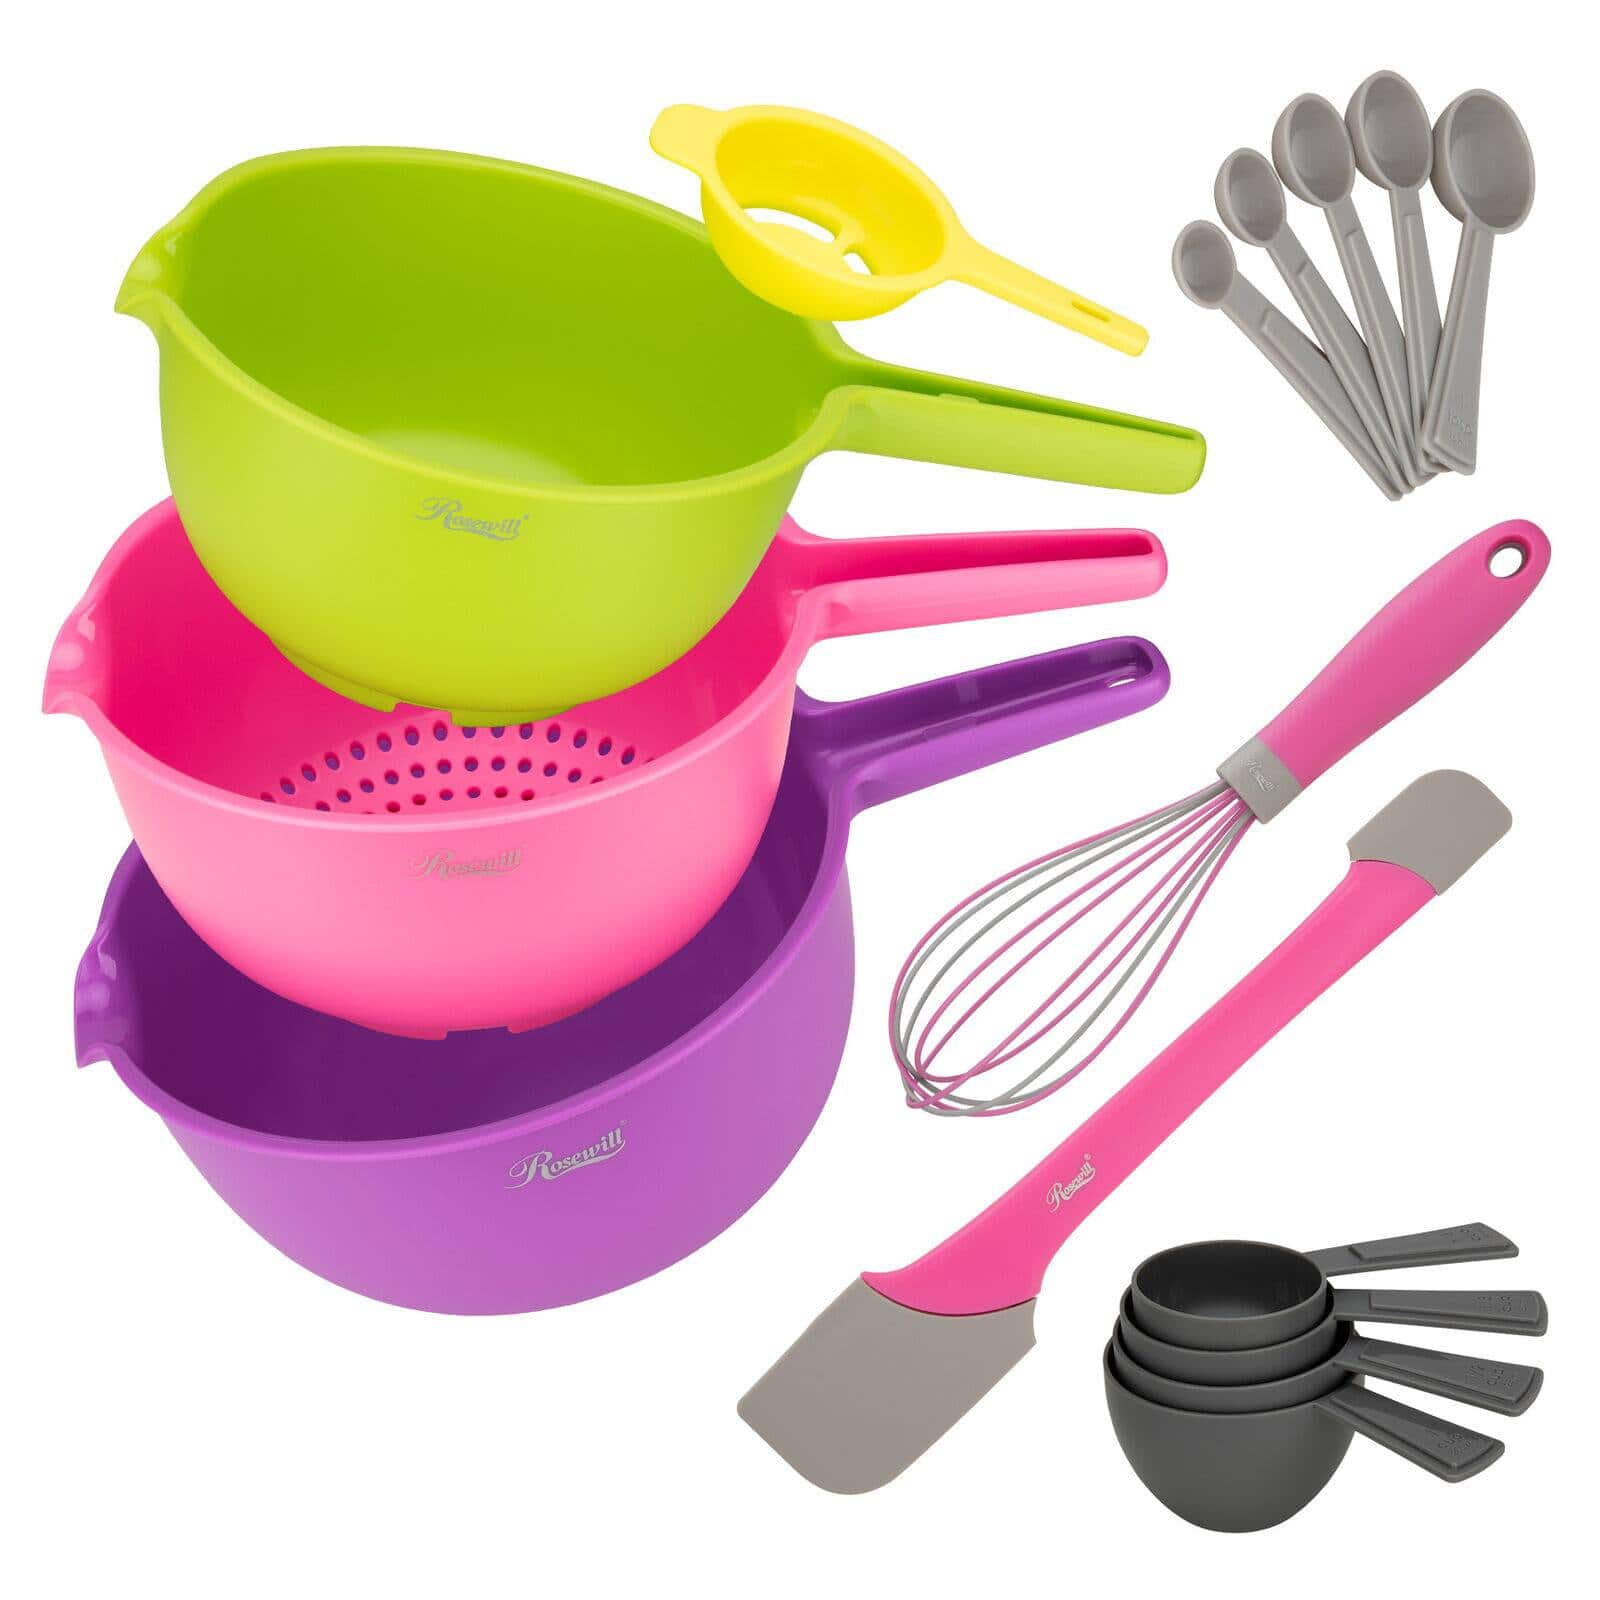 Rosewill 15 Pc Mixing and Baking bowl set w/ Accessories $16.19 + Free Shipping